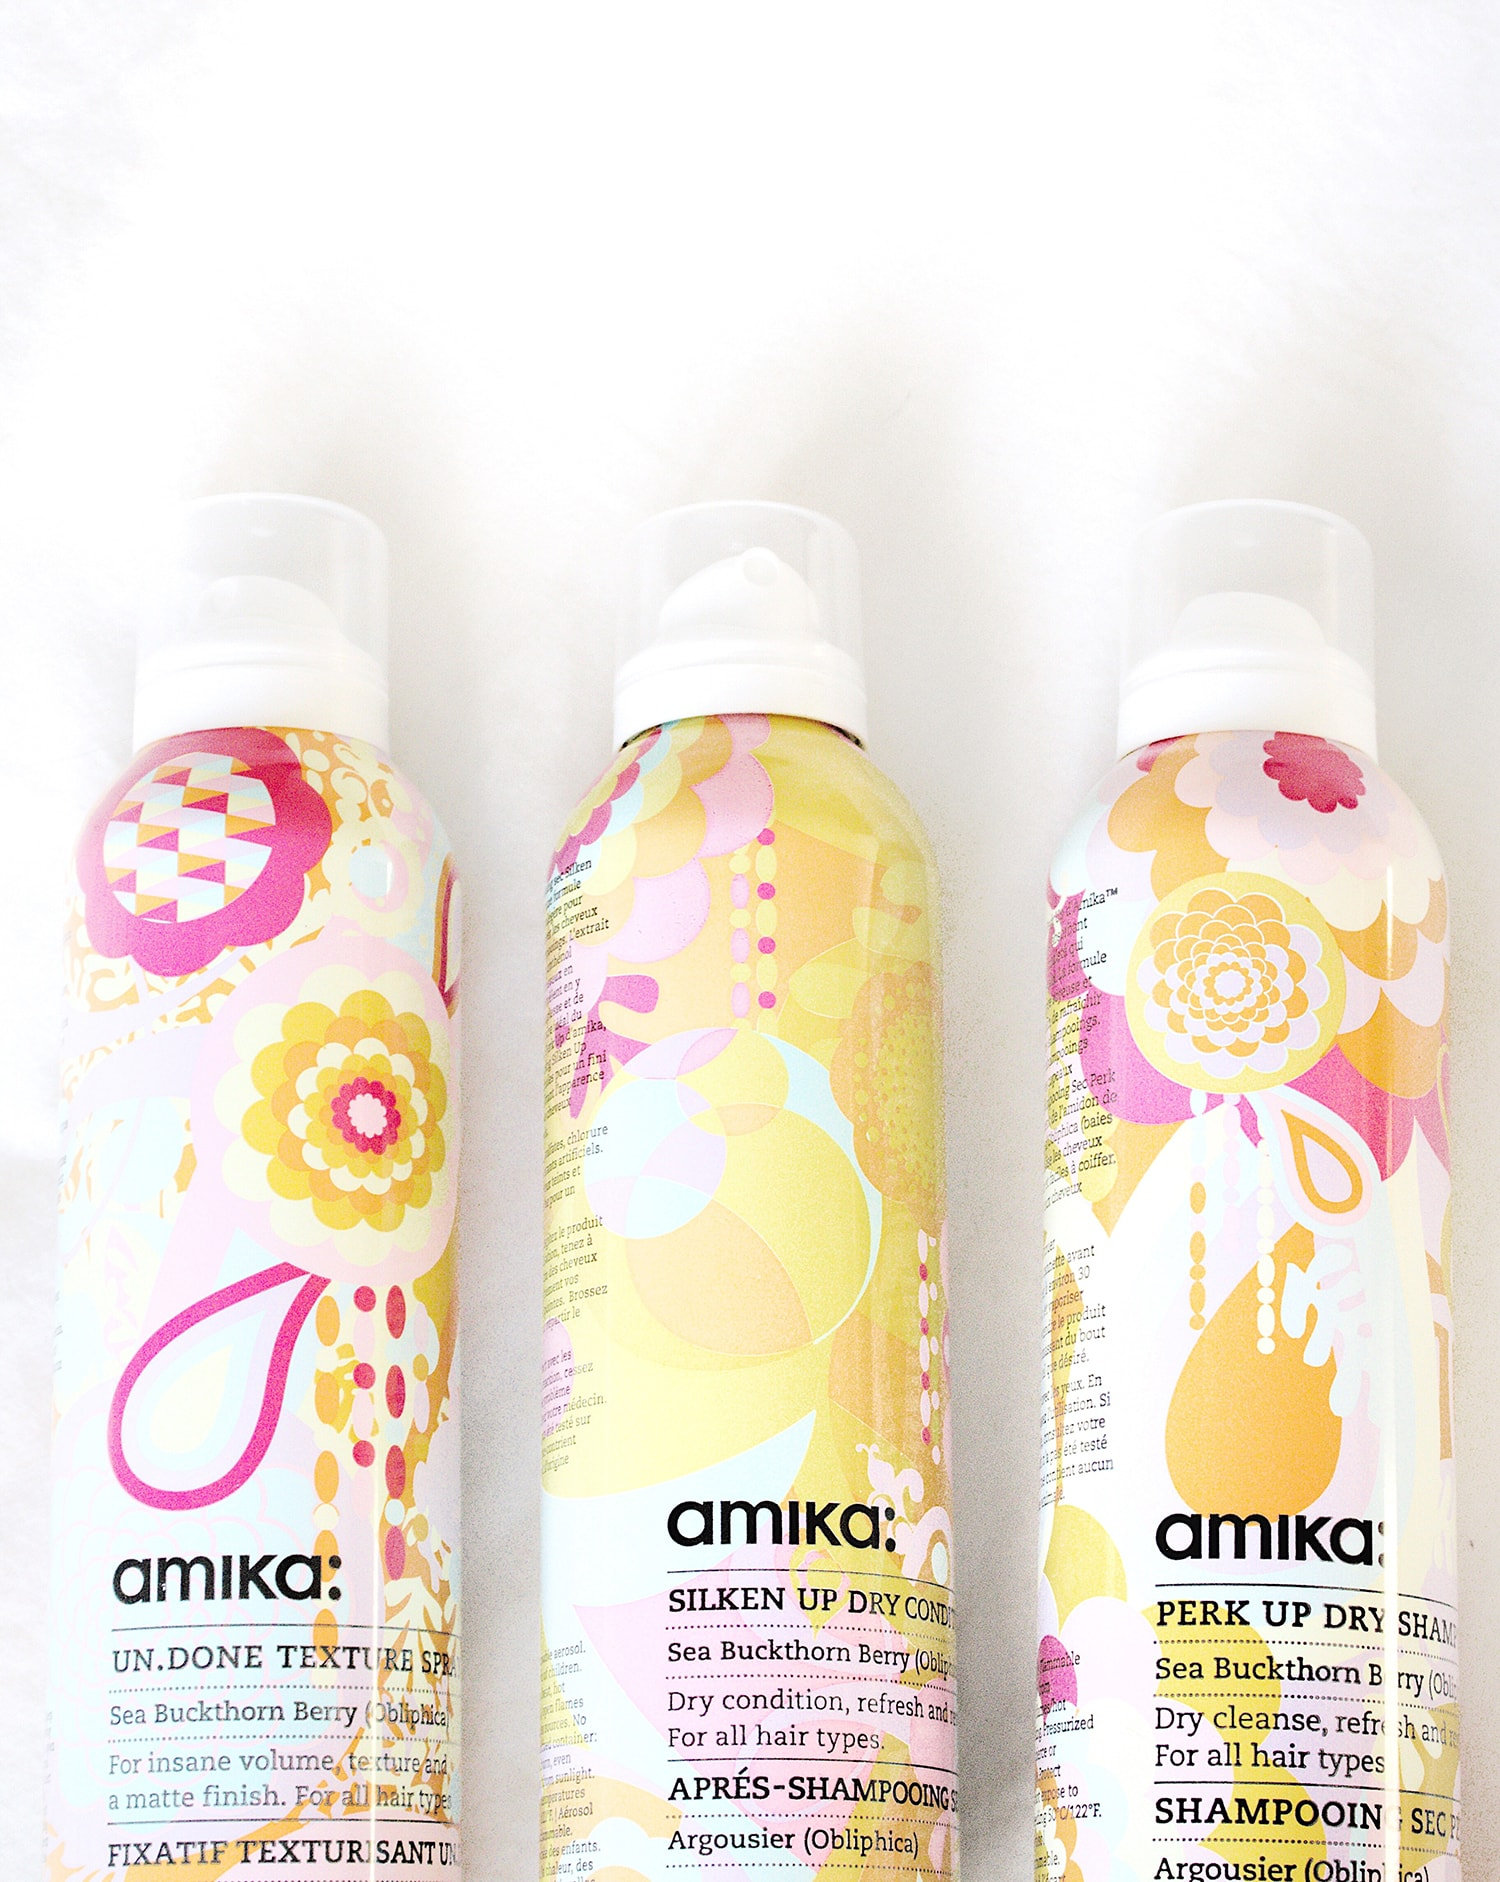 amika dry shampoo and conditioner